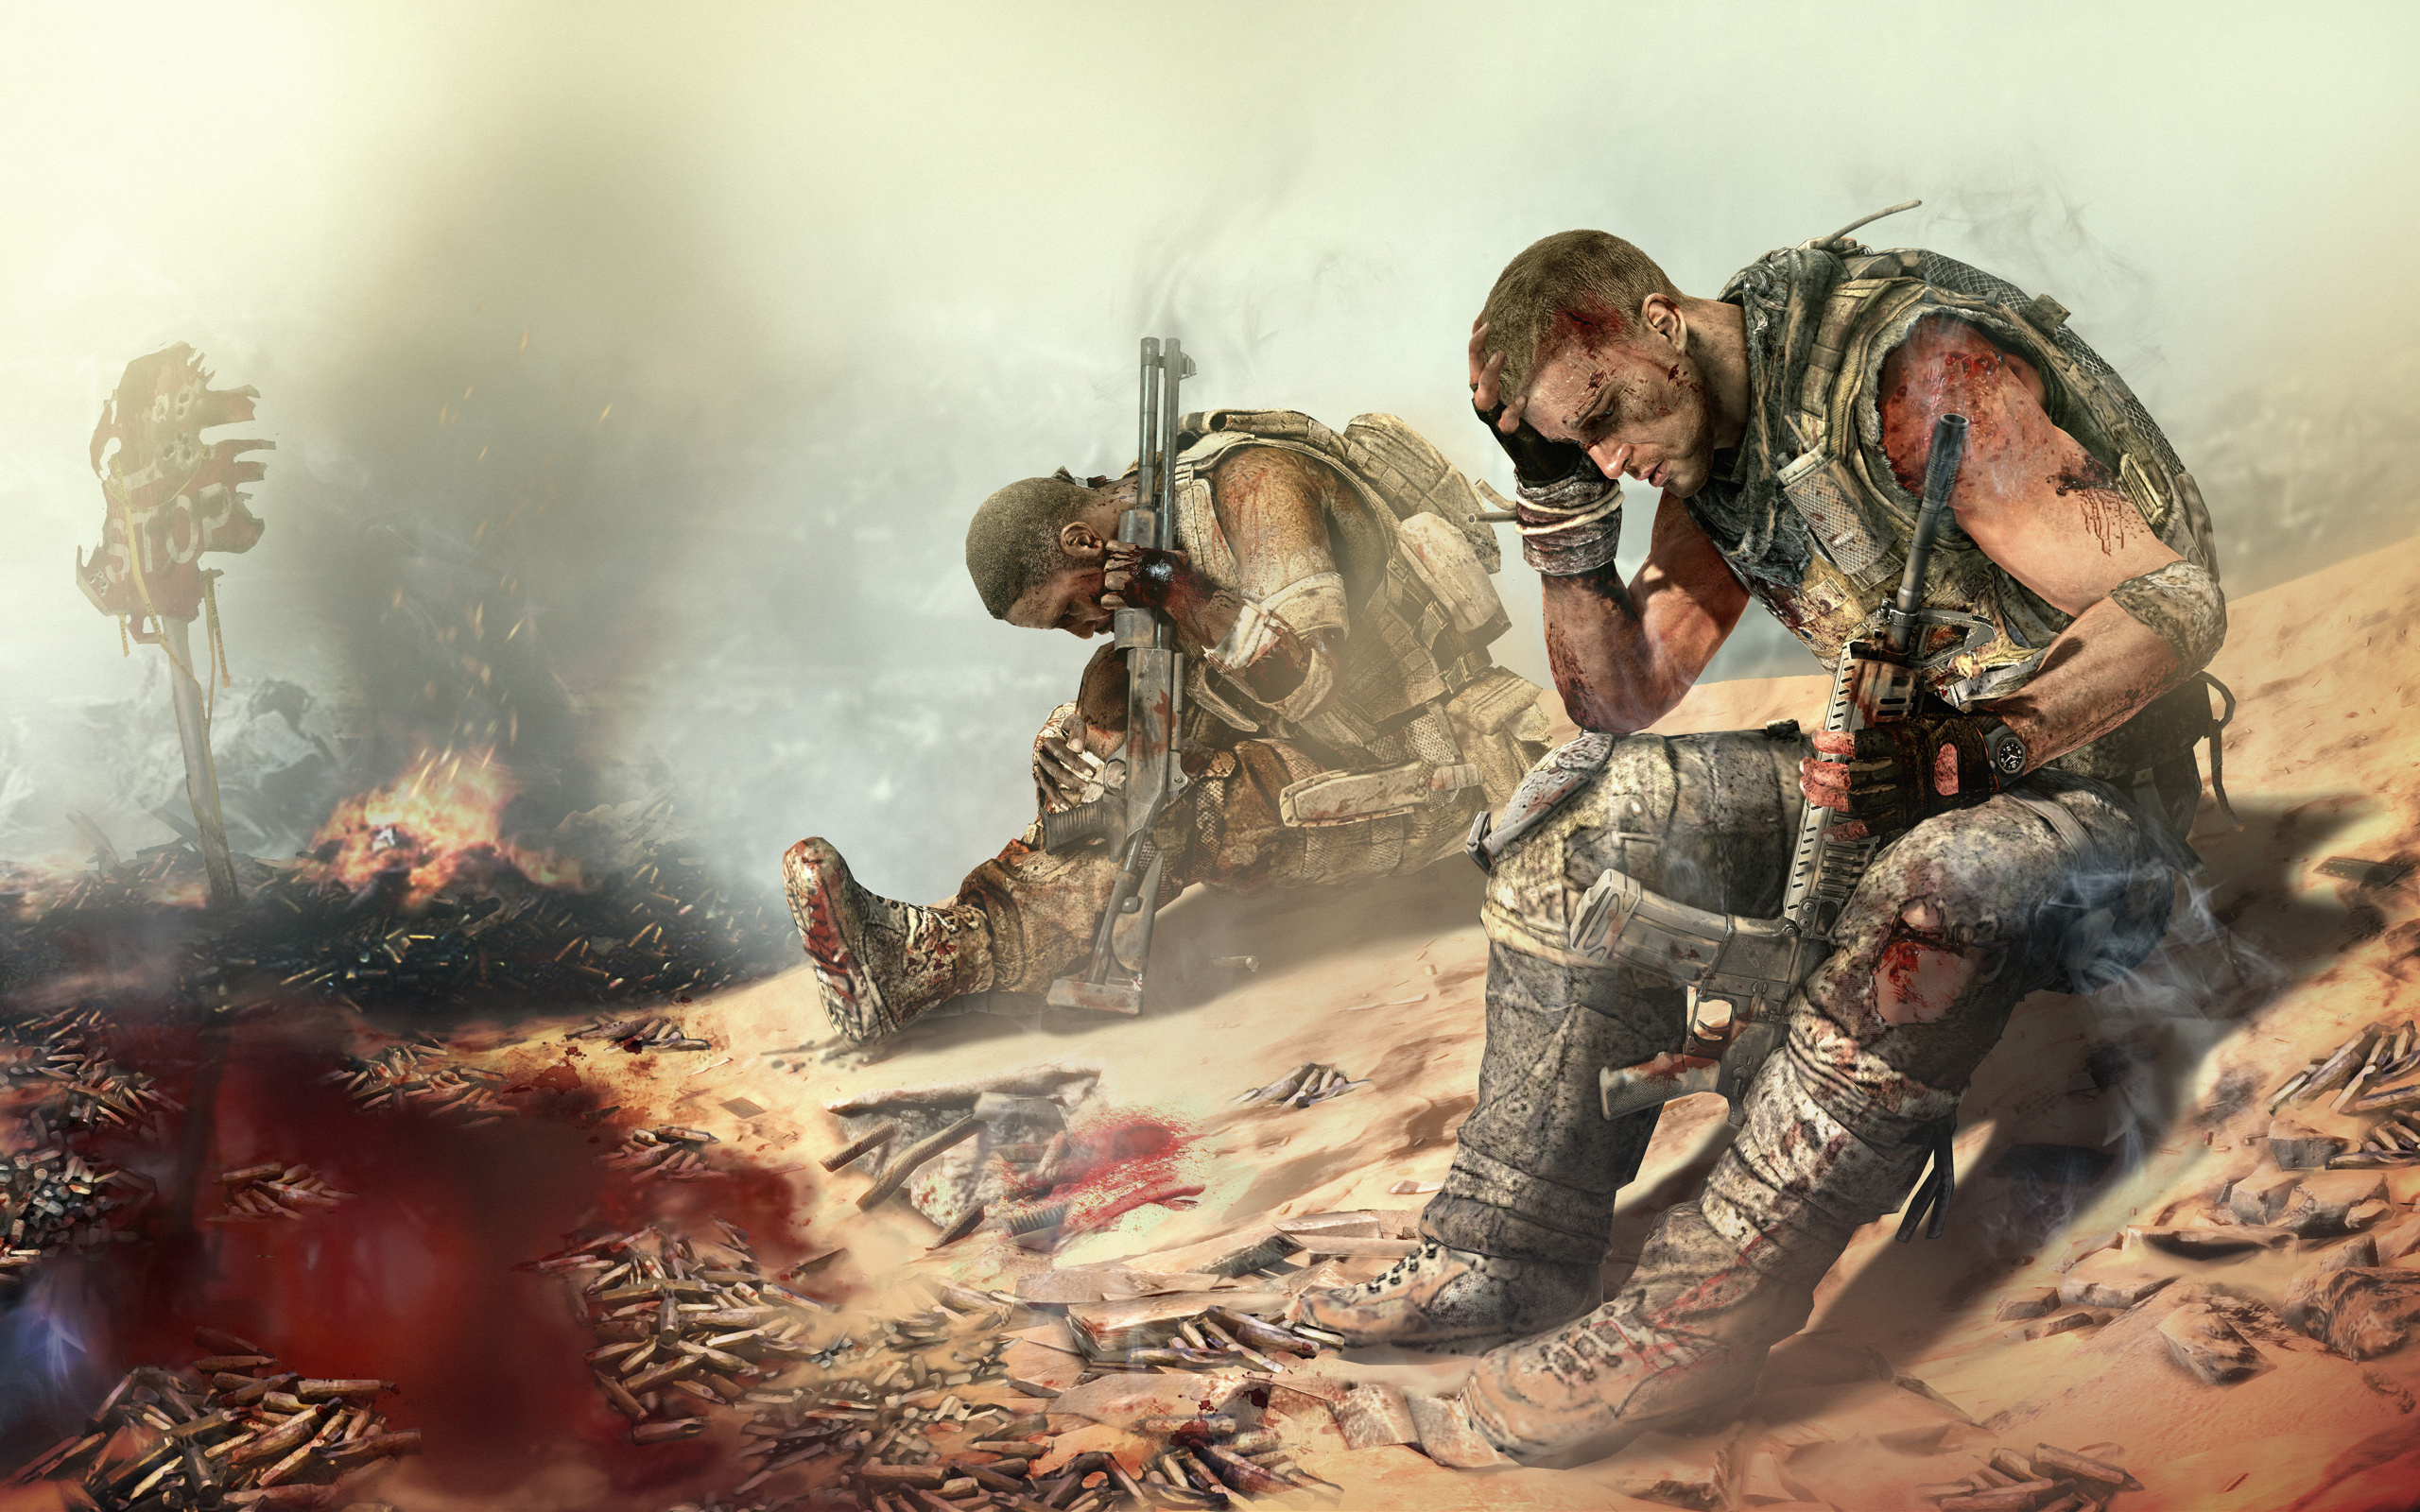 Spec Ops The Line HD Wallpaper Background Image 2560x1600 2560x1600